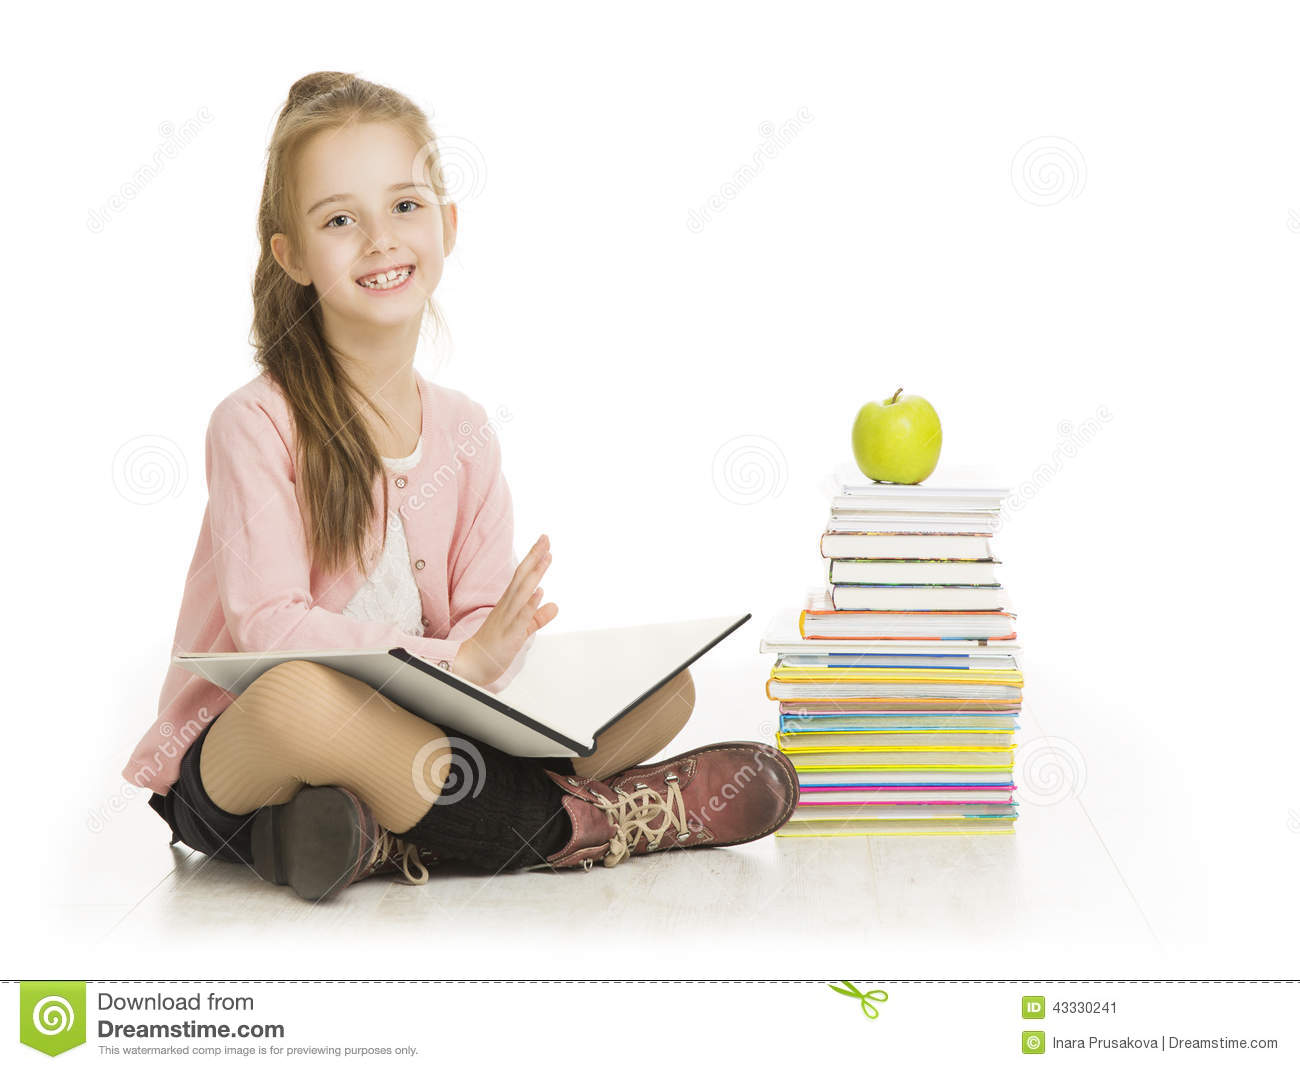 ... Photo: School Girl Reading Book, Child Study Education, Books on White